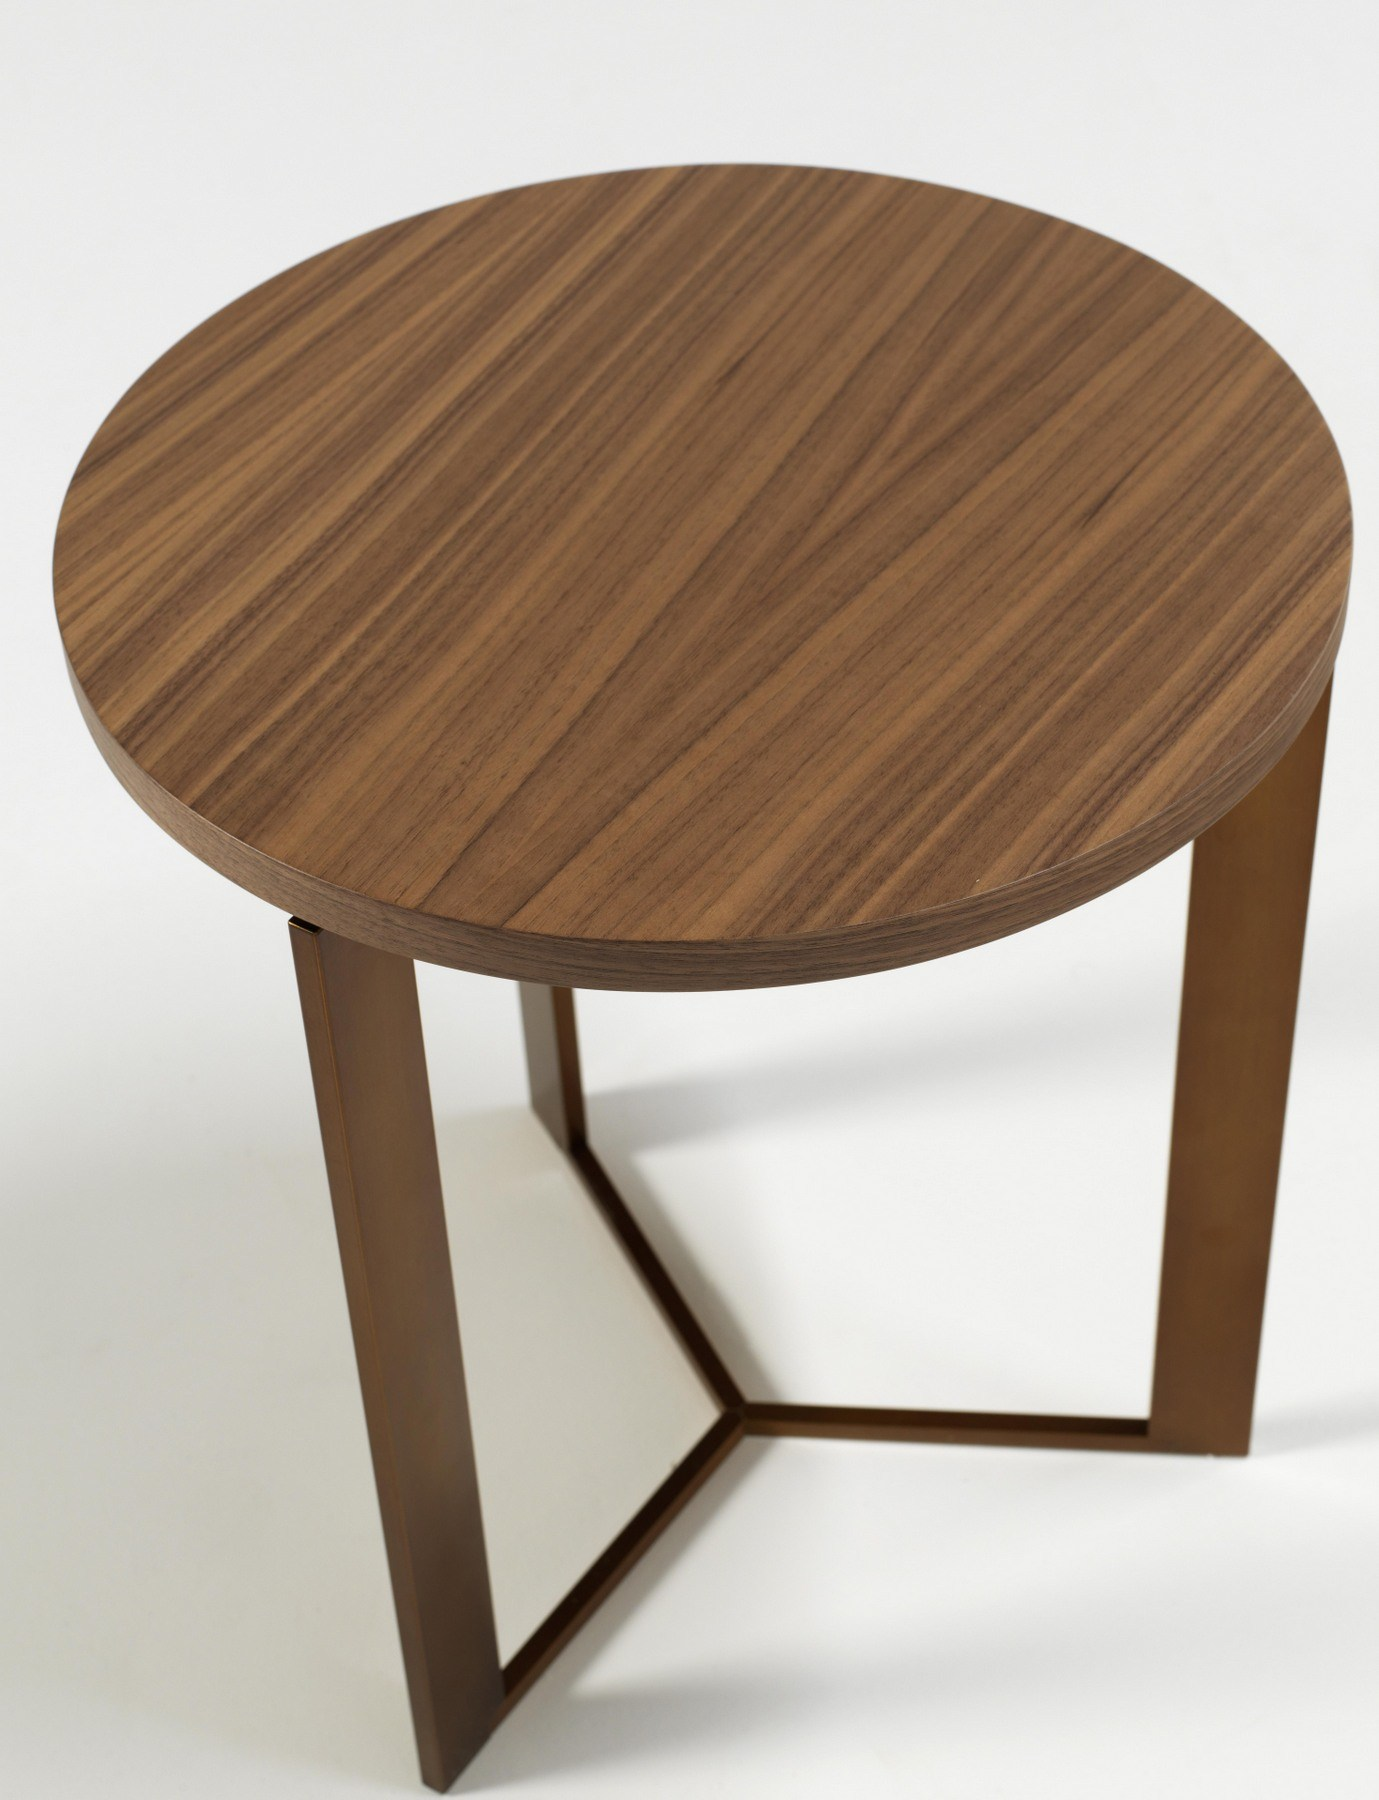 Gong Walnut Coffee Table By Amura